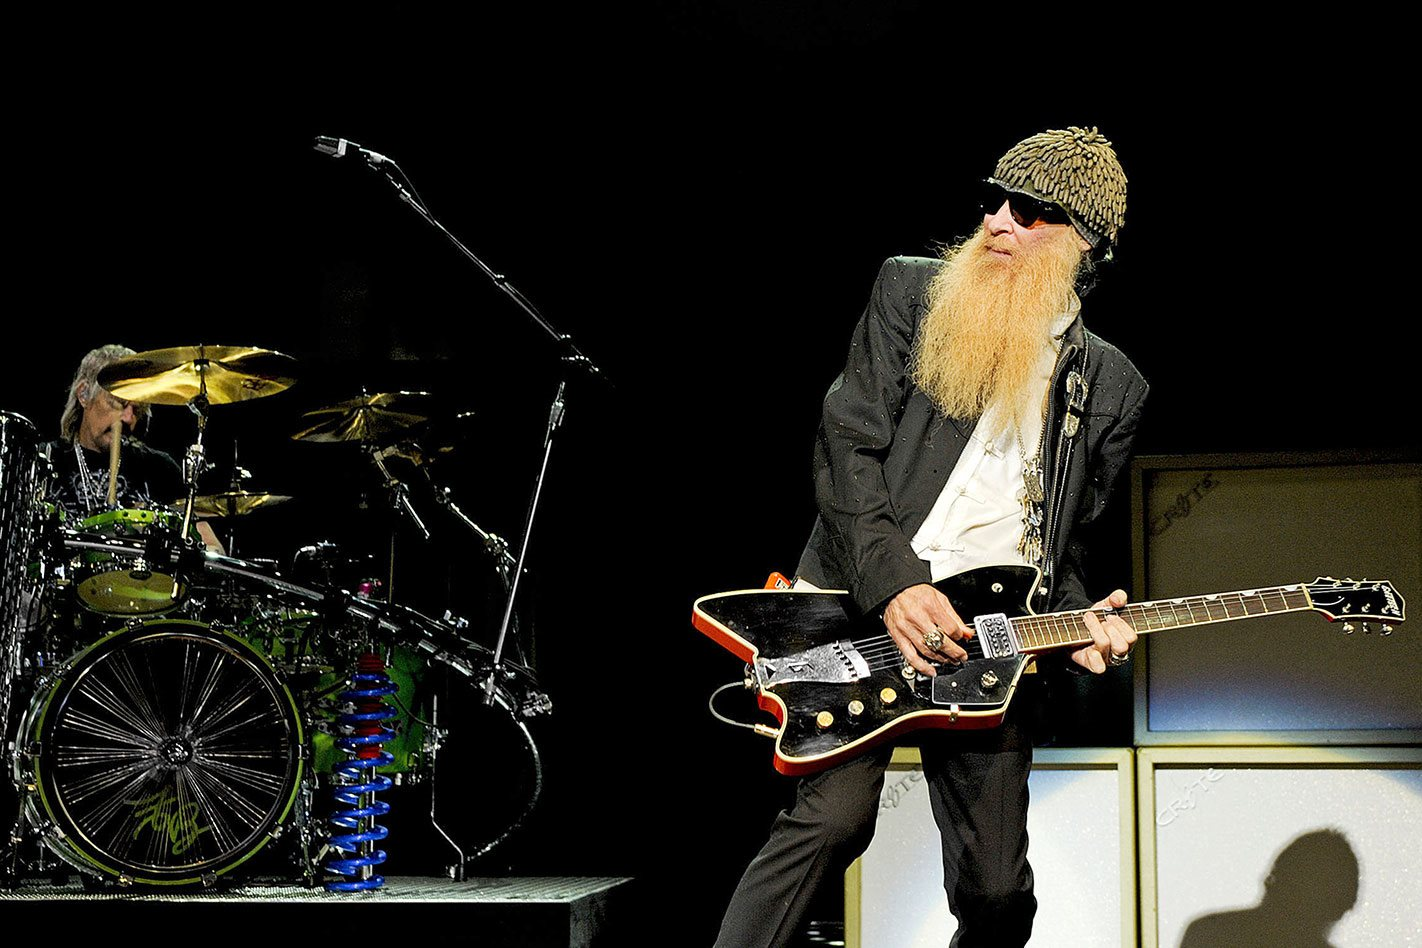 zz top frontman billy  gibbons interview